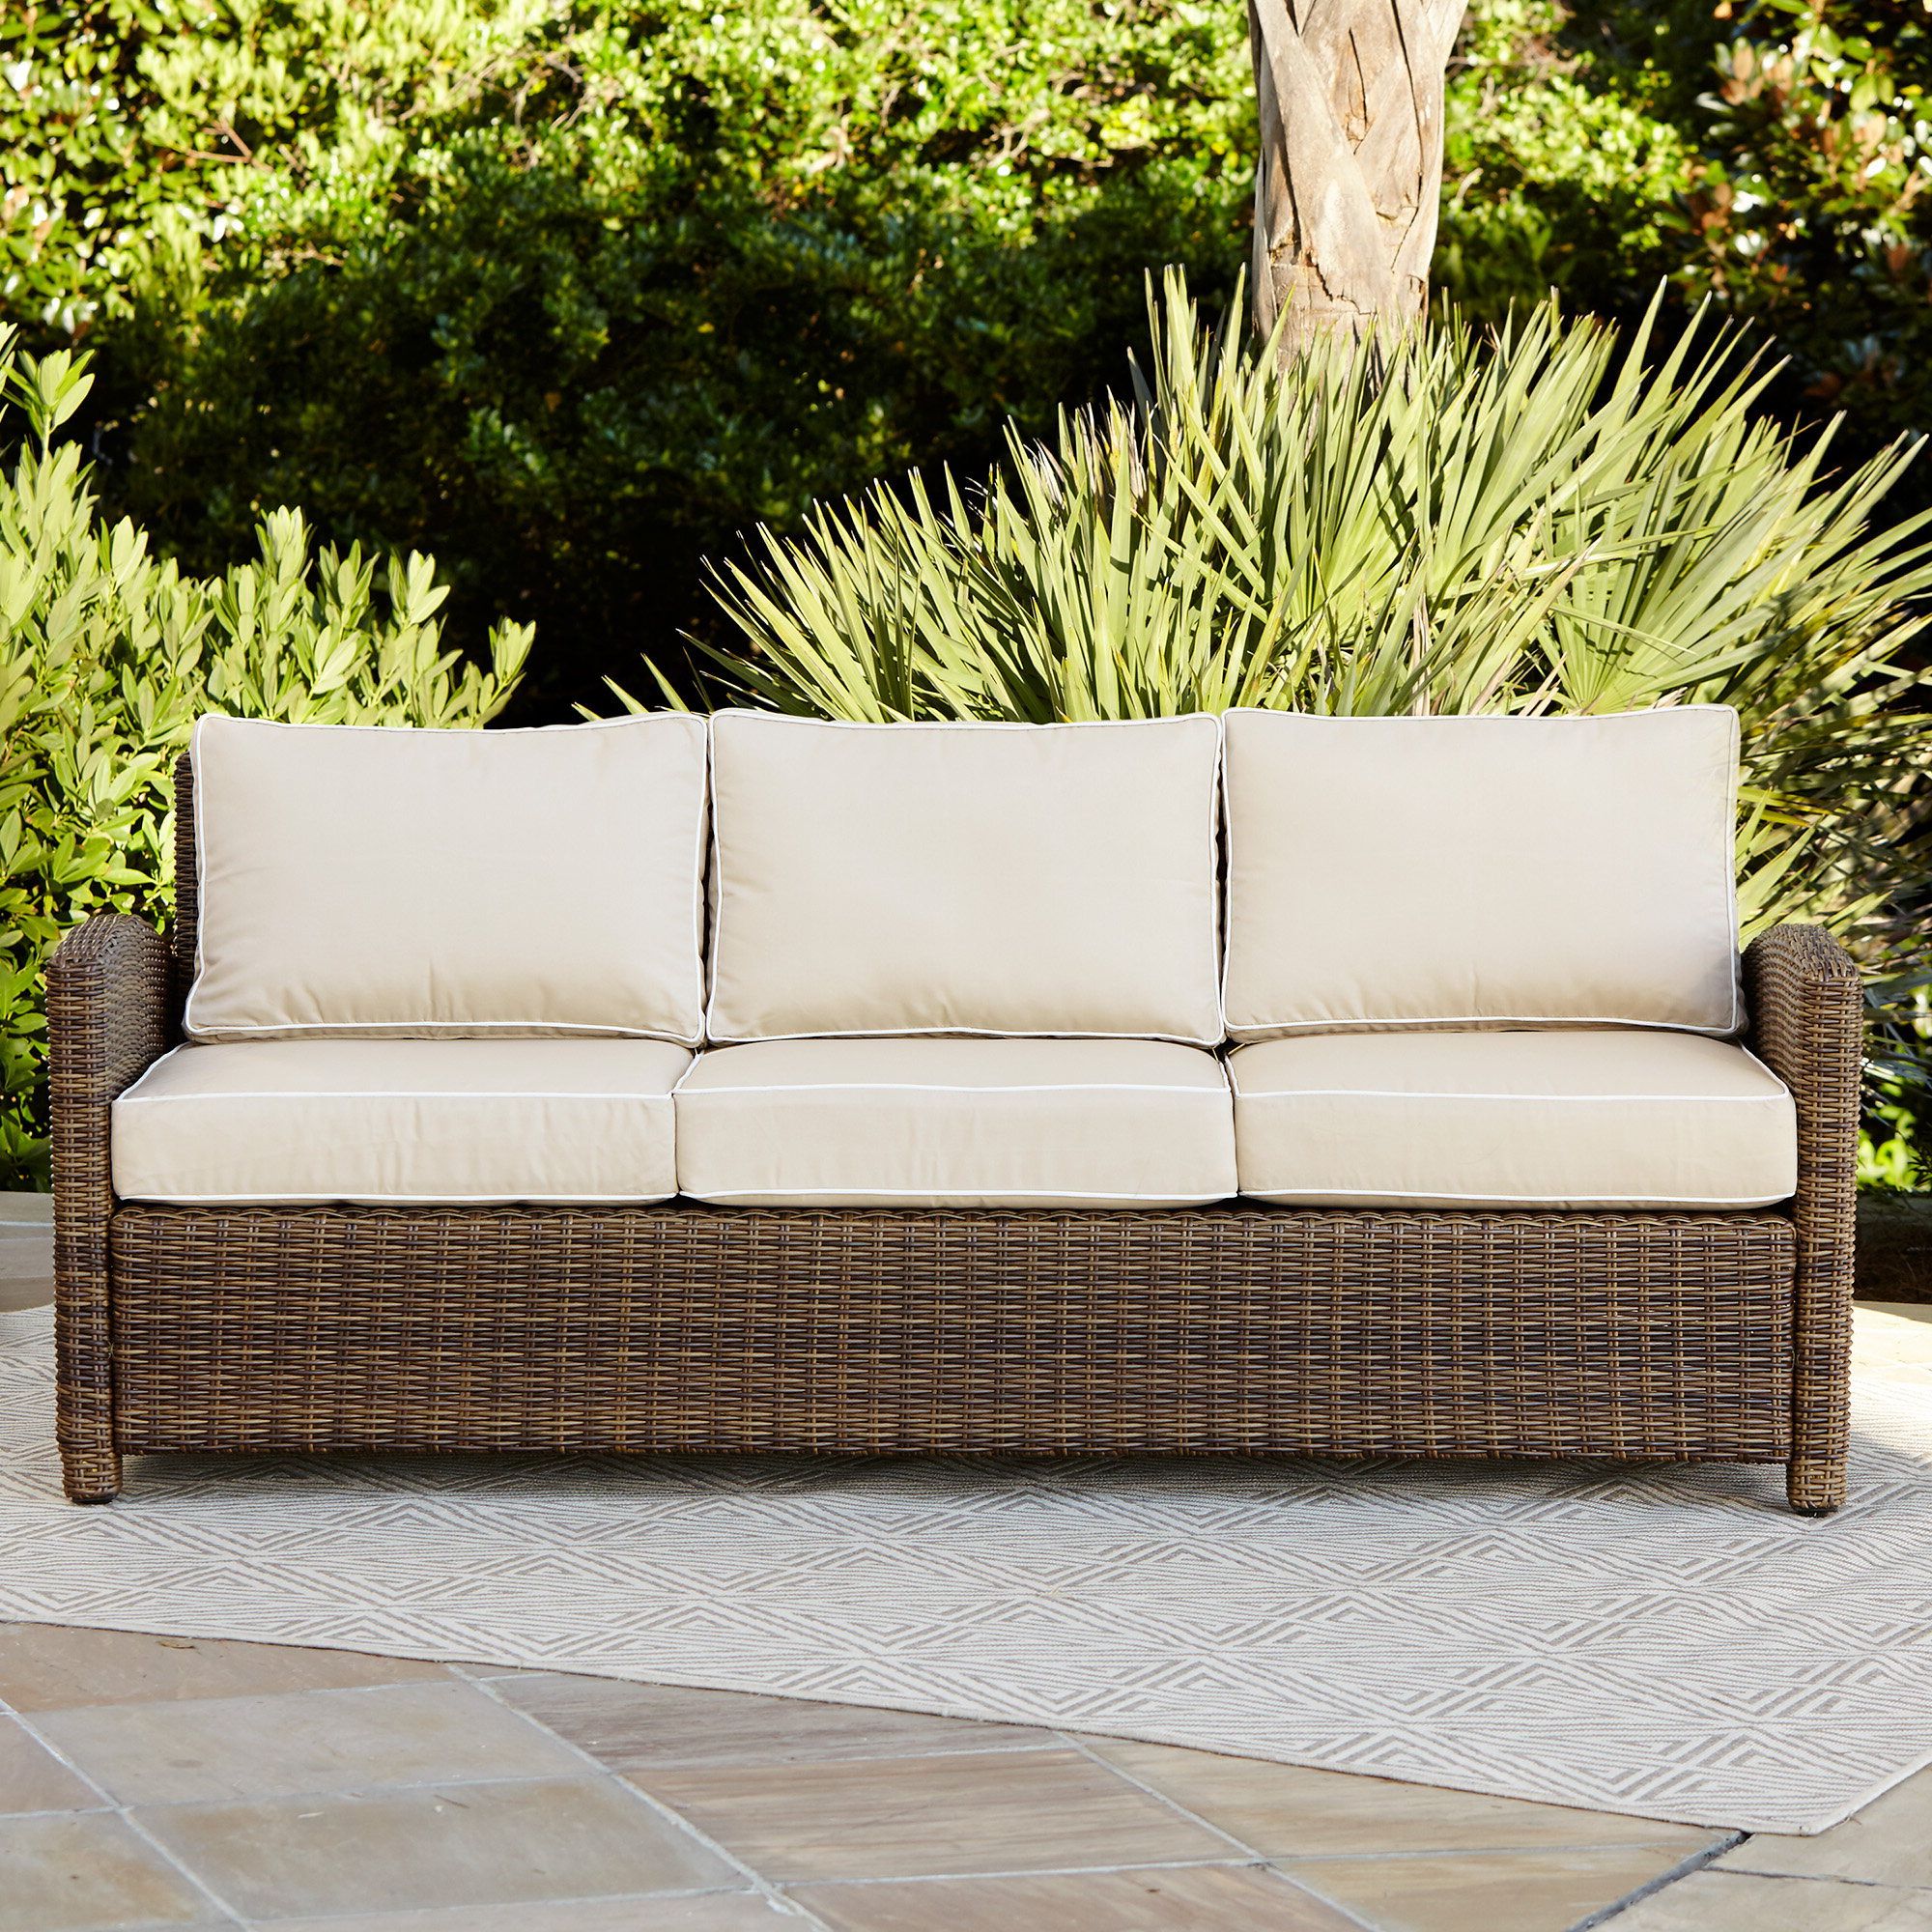 Lawson Patio Sofa With Cushions In 2019 Burruss Patio Sectionals With Cushions (Gallery 15 of 25)